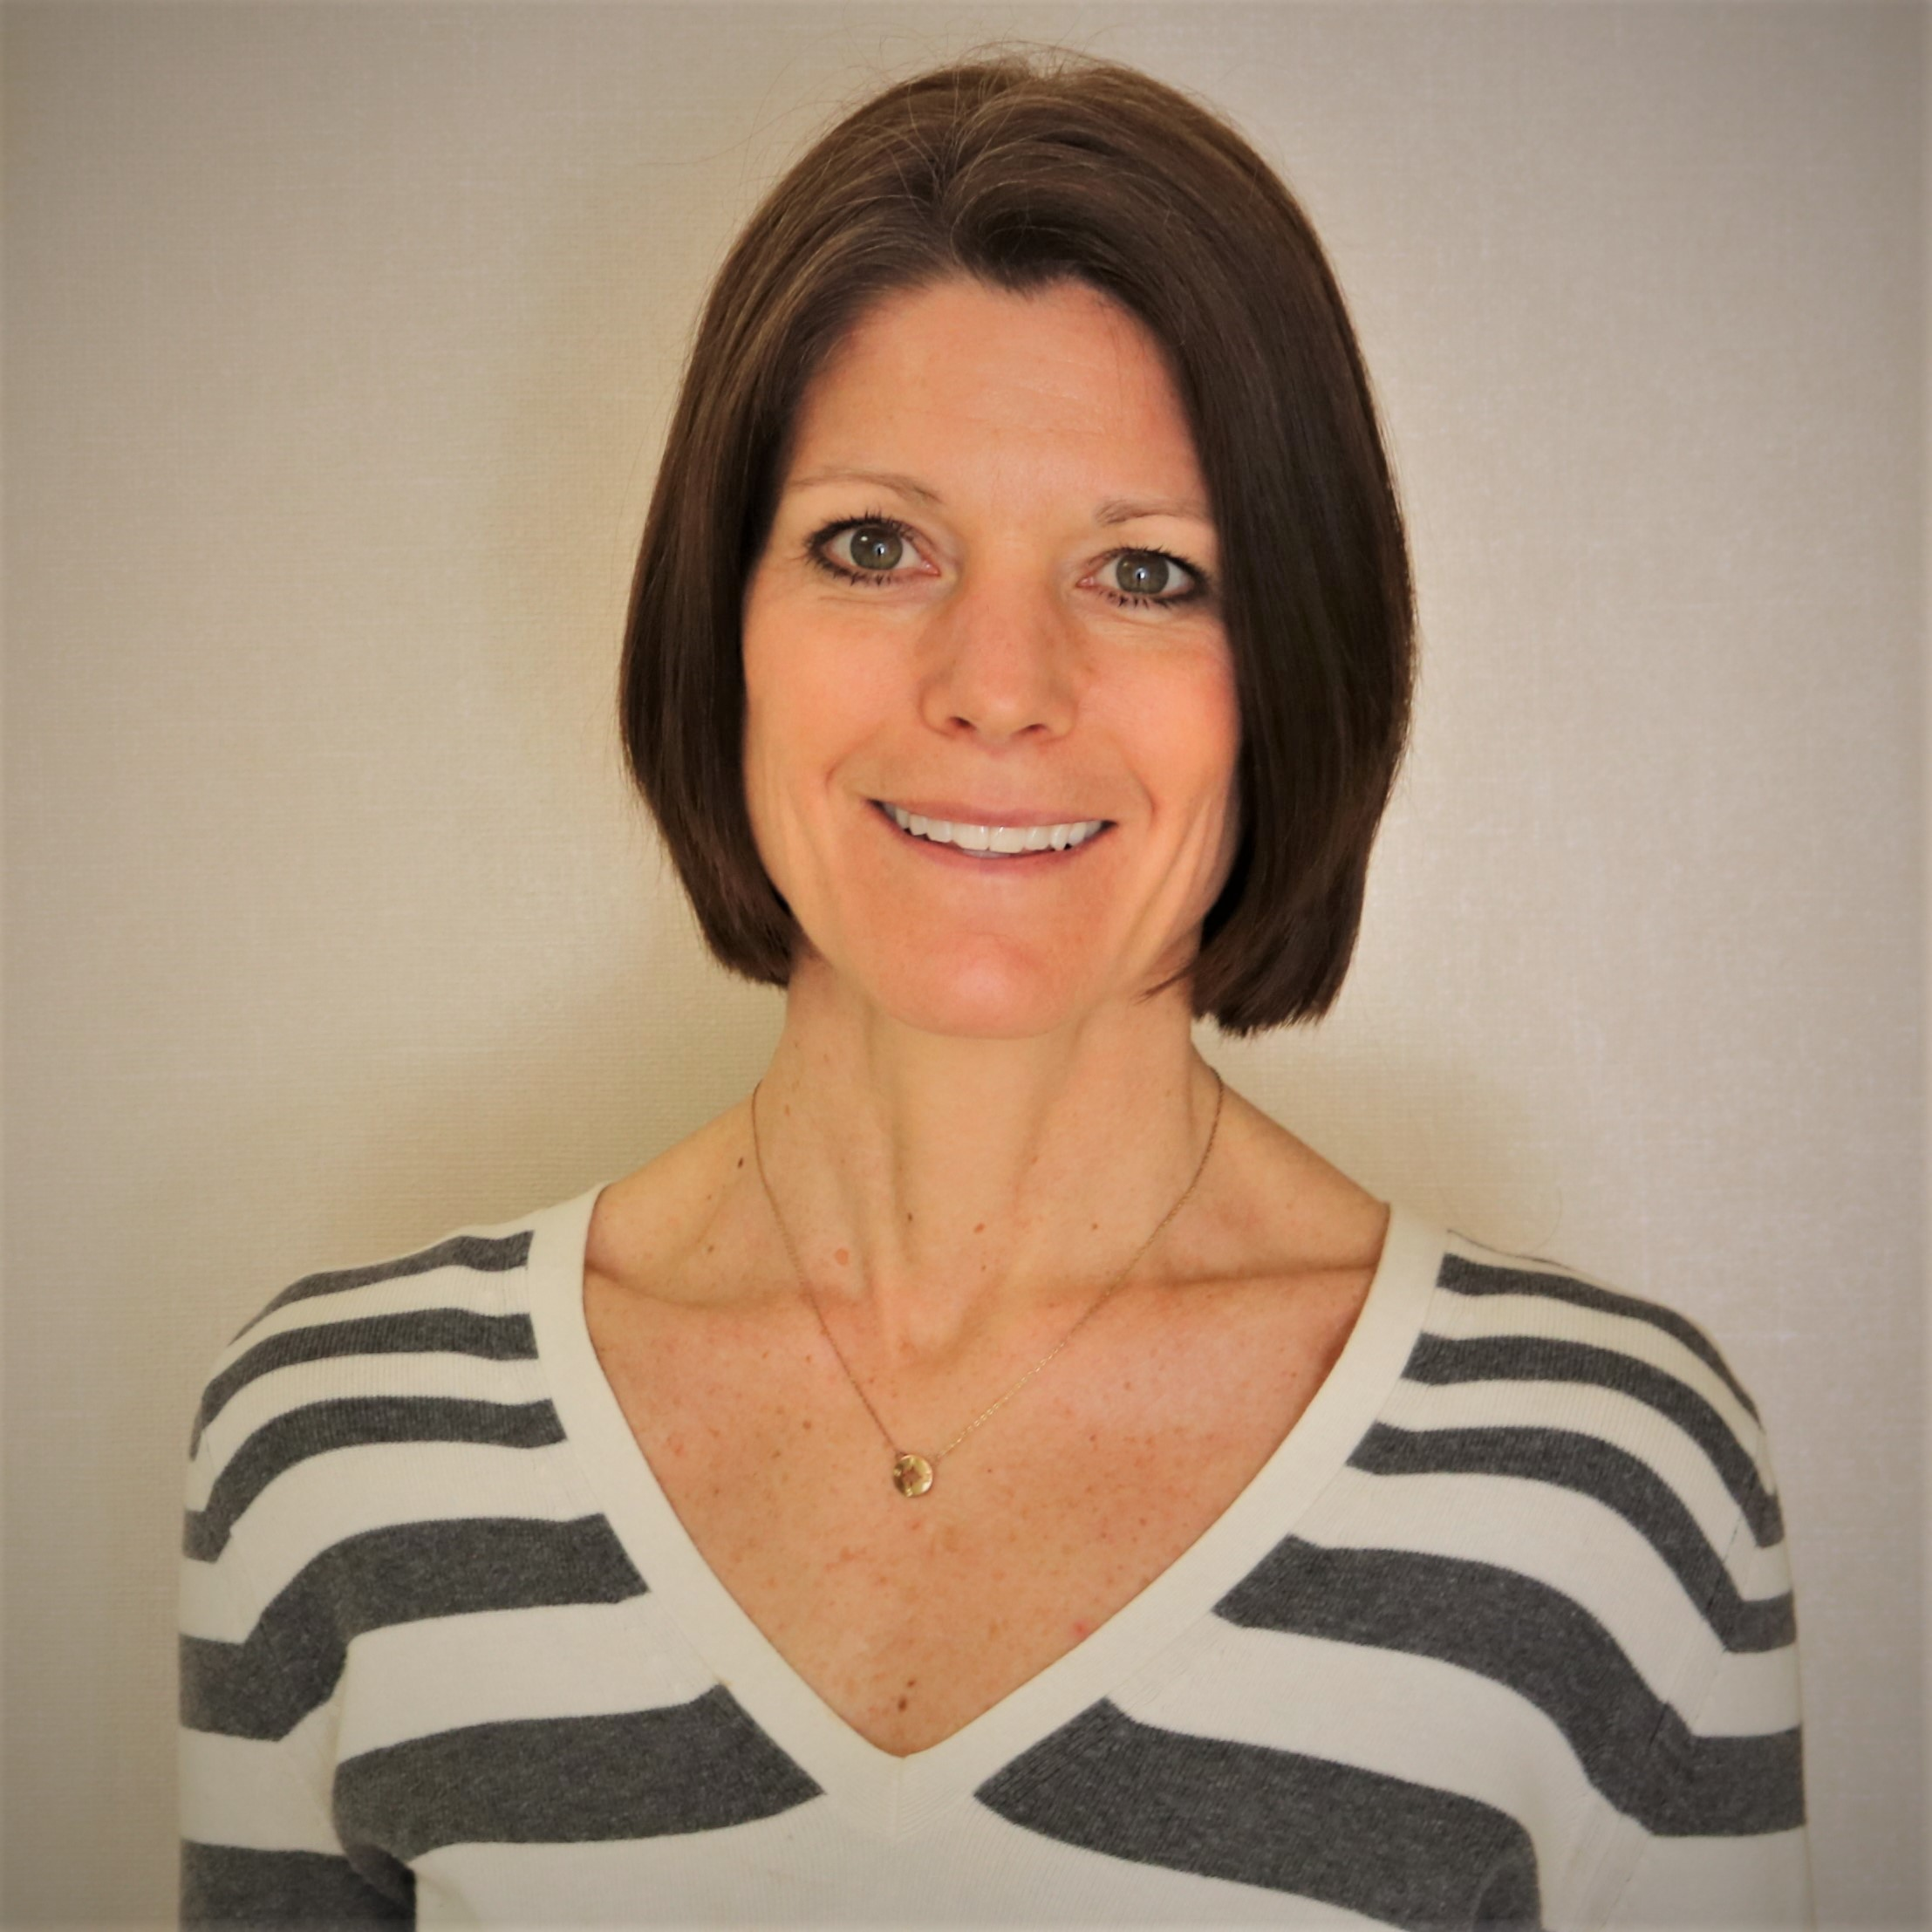 Jill Andersen, MPT, NBC-HWC, physical therapist for Red Lake Hospital, Indian Health Service